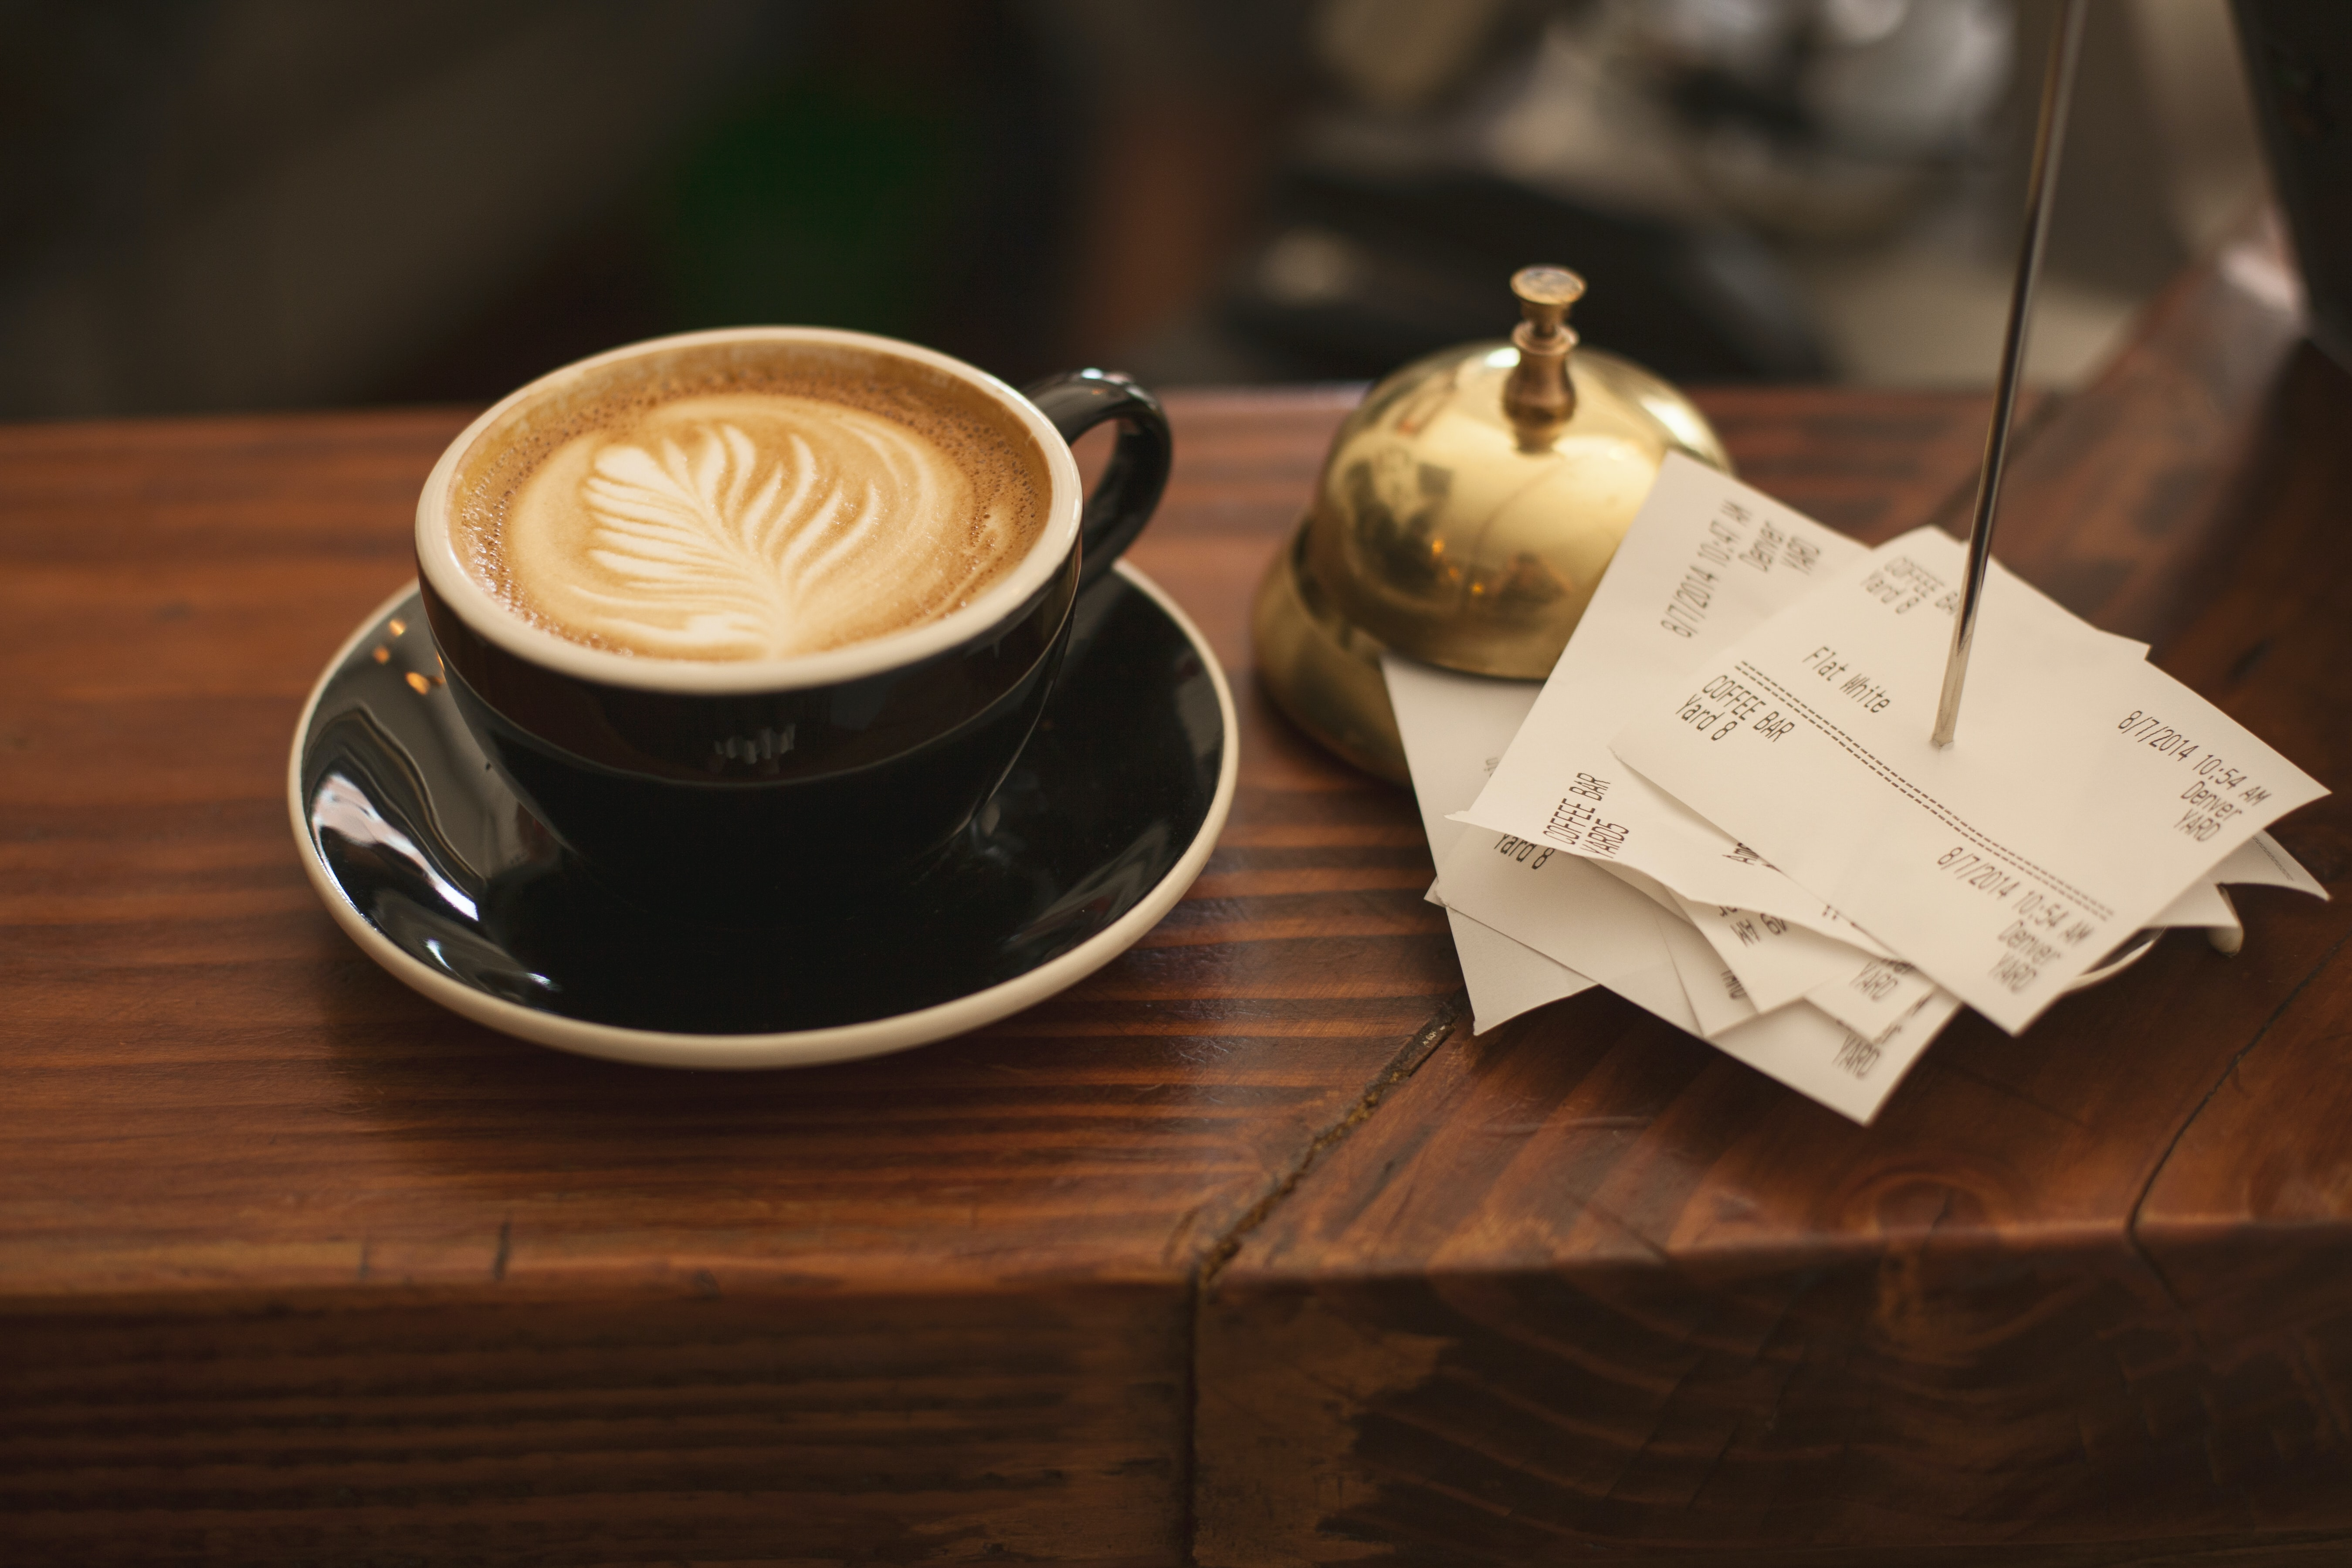 A stack of receipts next to a coffee with espresso art on it